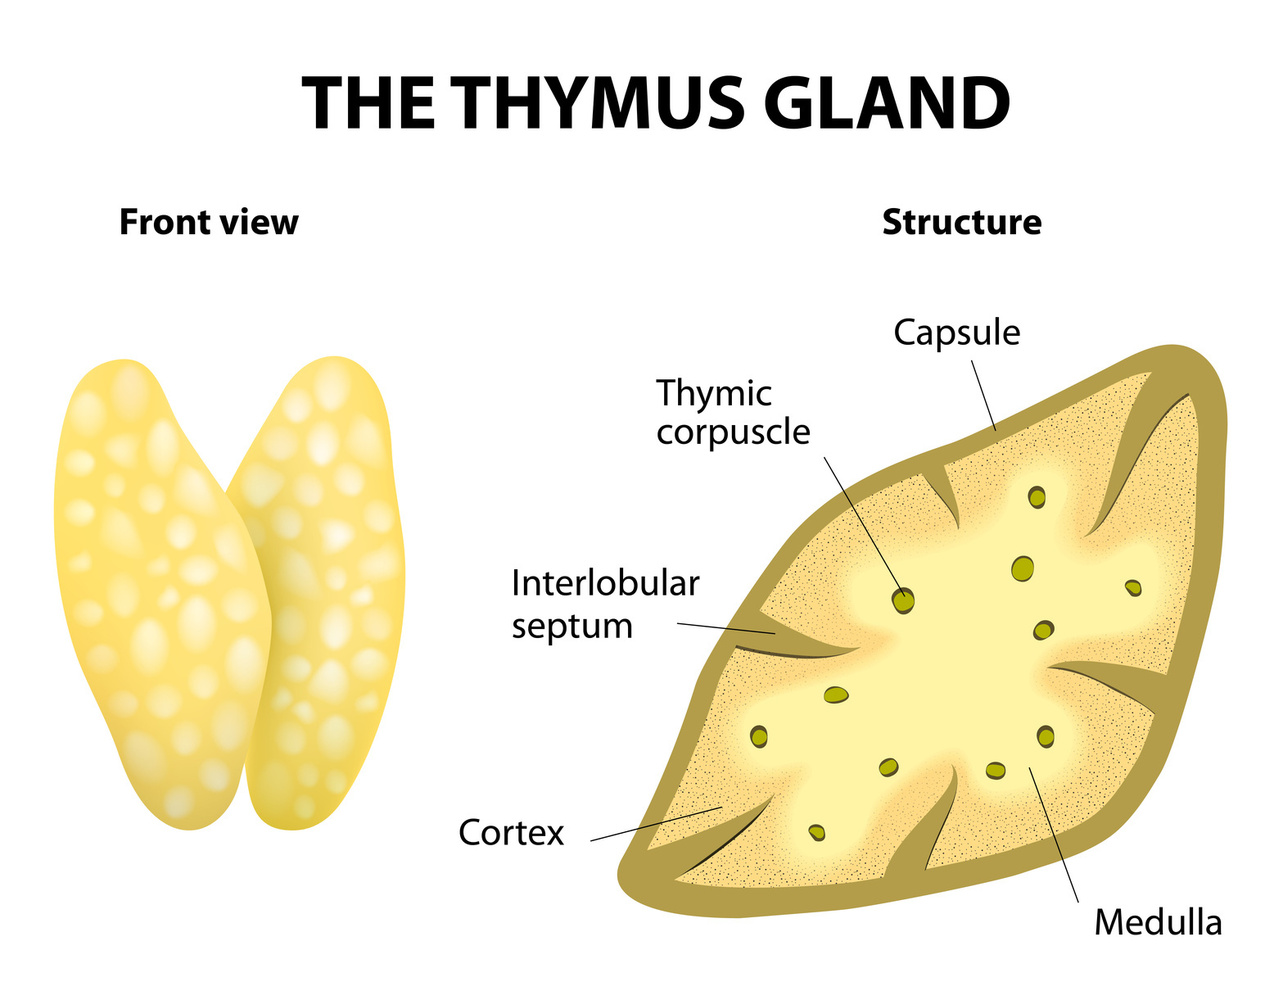 Thymus gland in Lyme disease by Marty Ross MD image.